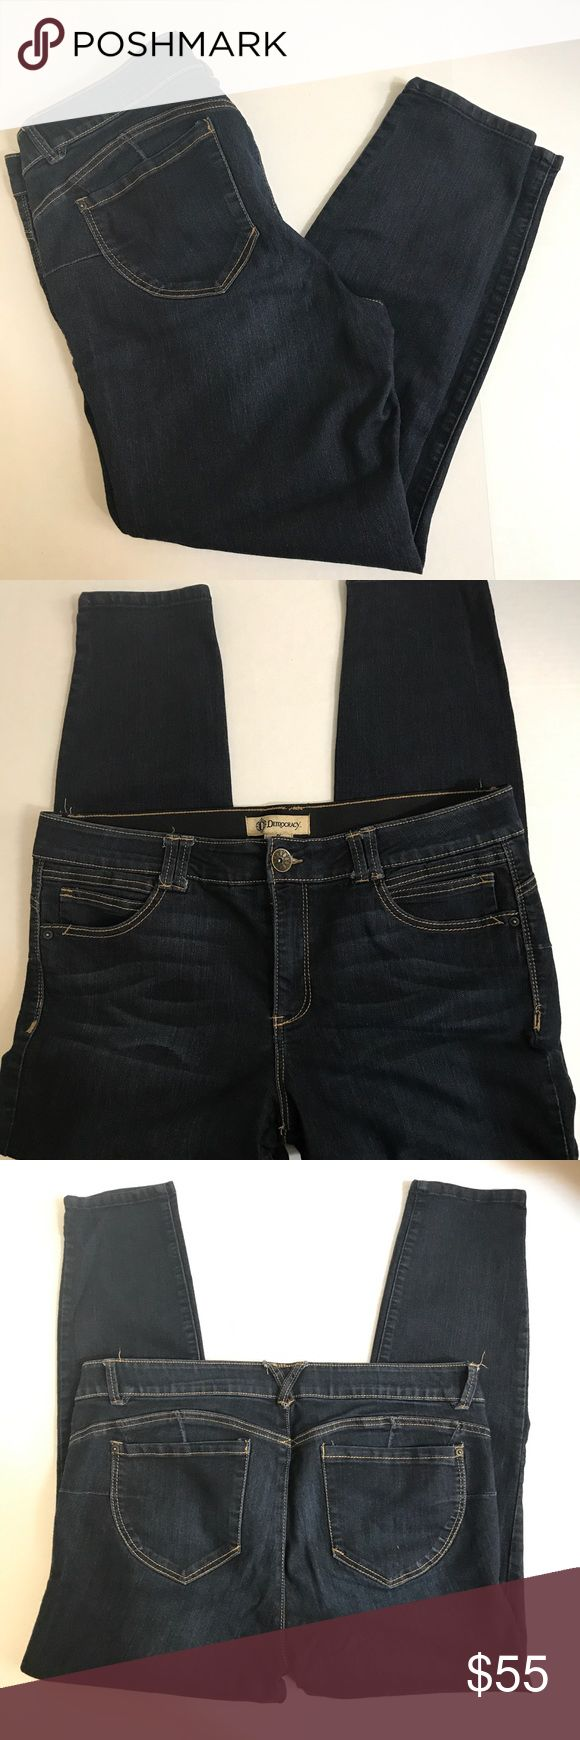 """Democracy AB technology booty lift jeans!  Sz. 16 Omg!!!  How come no one ever told me about elastic waisted jeans that don't look like they are elastic??!!!  These are jeans perfection!!!  Waist measures 19"""" across the front flat laid, rise measures 10.5"""" and inseam is 27"""".  EUC - flawless!  JP0111110917 Democracy Jeans Ankle & Cropped"""